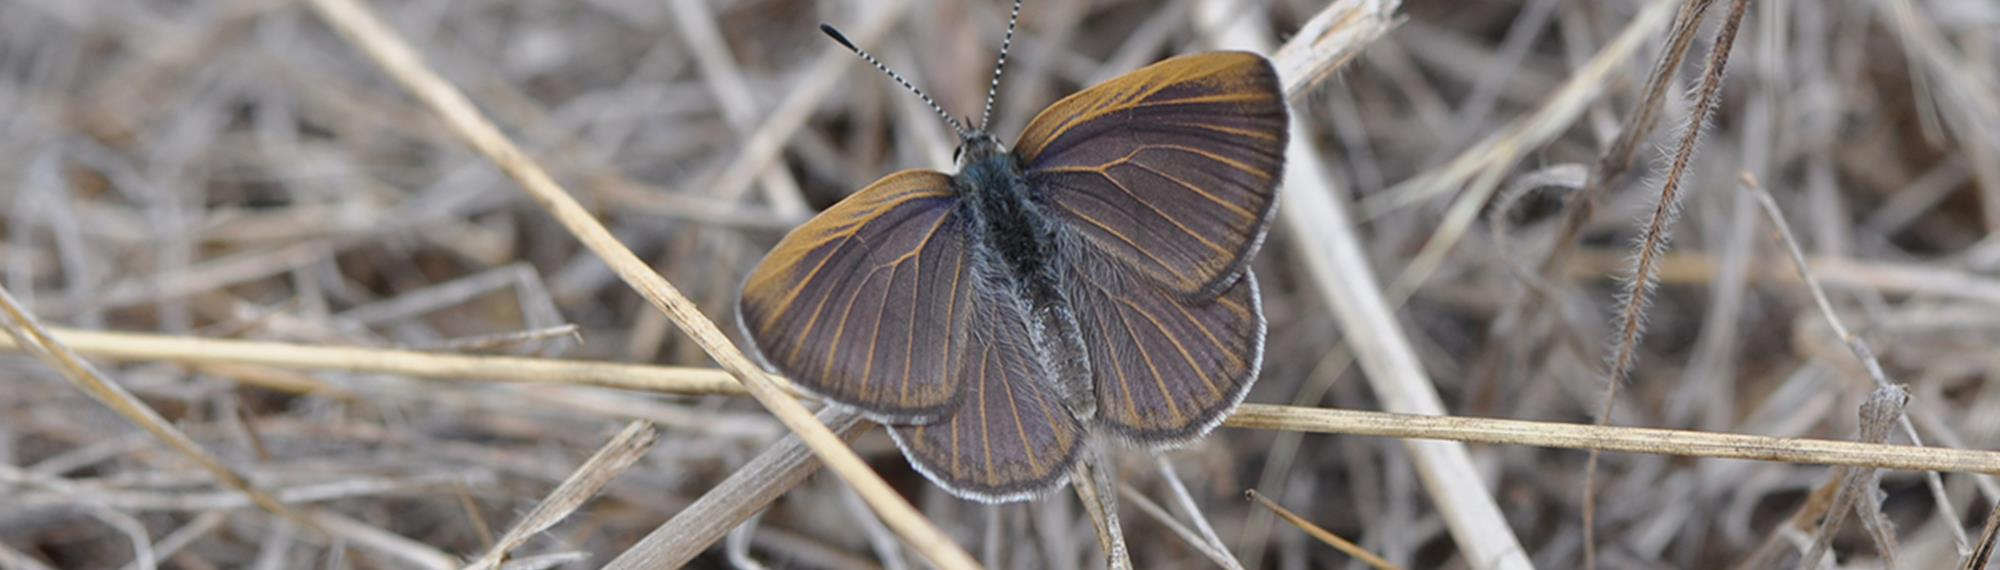 Golden Rayed Blue Butterfly resting with wings spread on dry grass. Its brown with faint iridescent blue suffusion and golden veins.